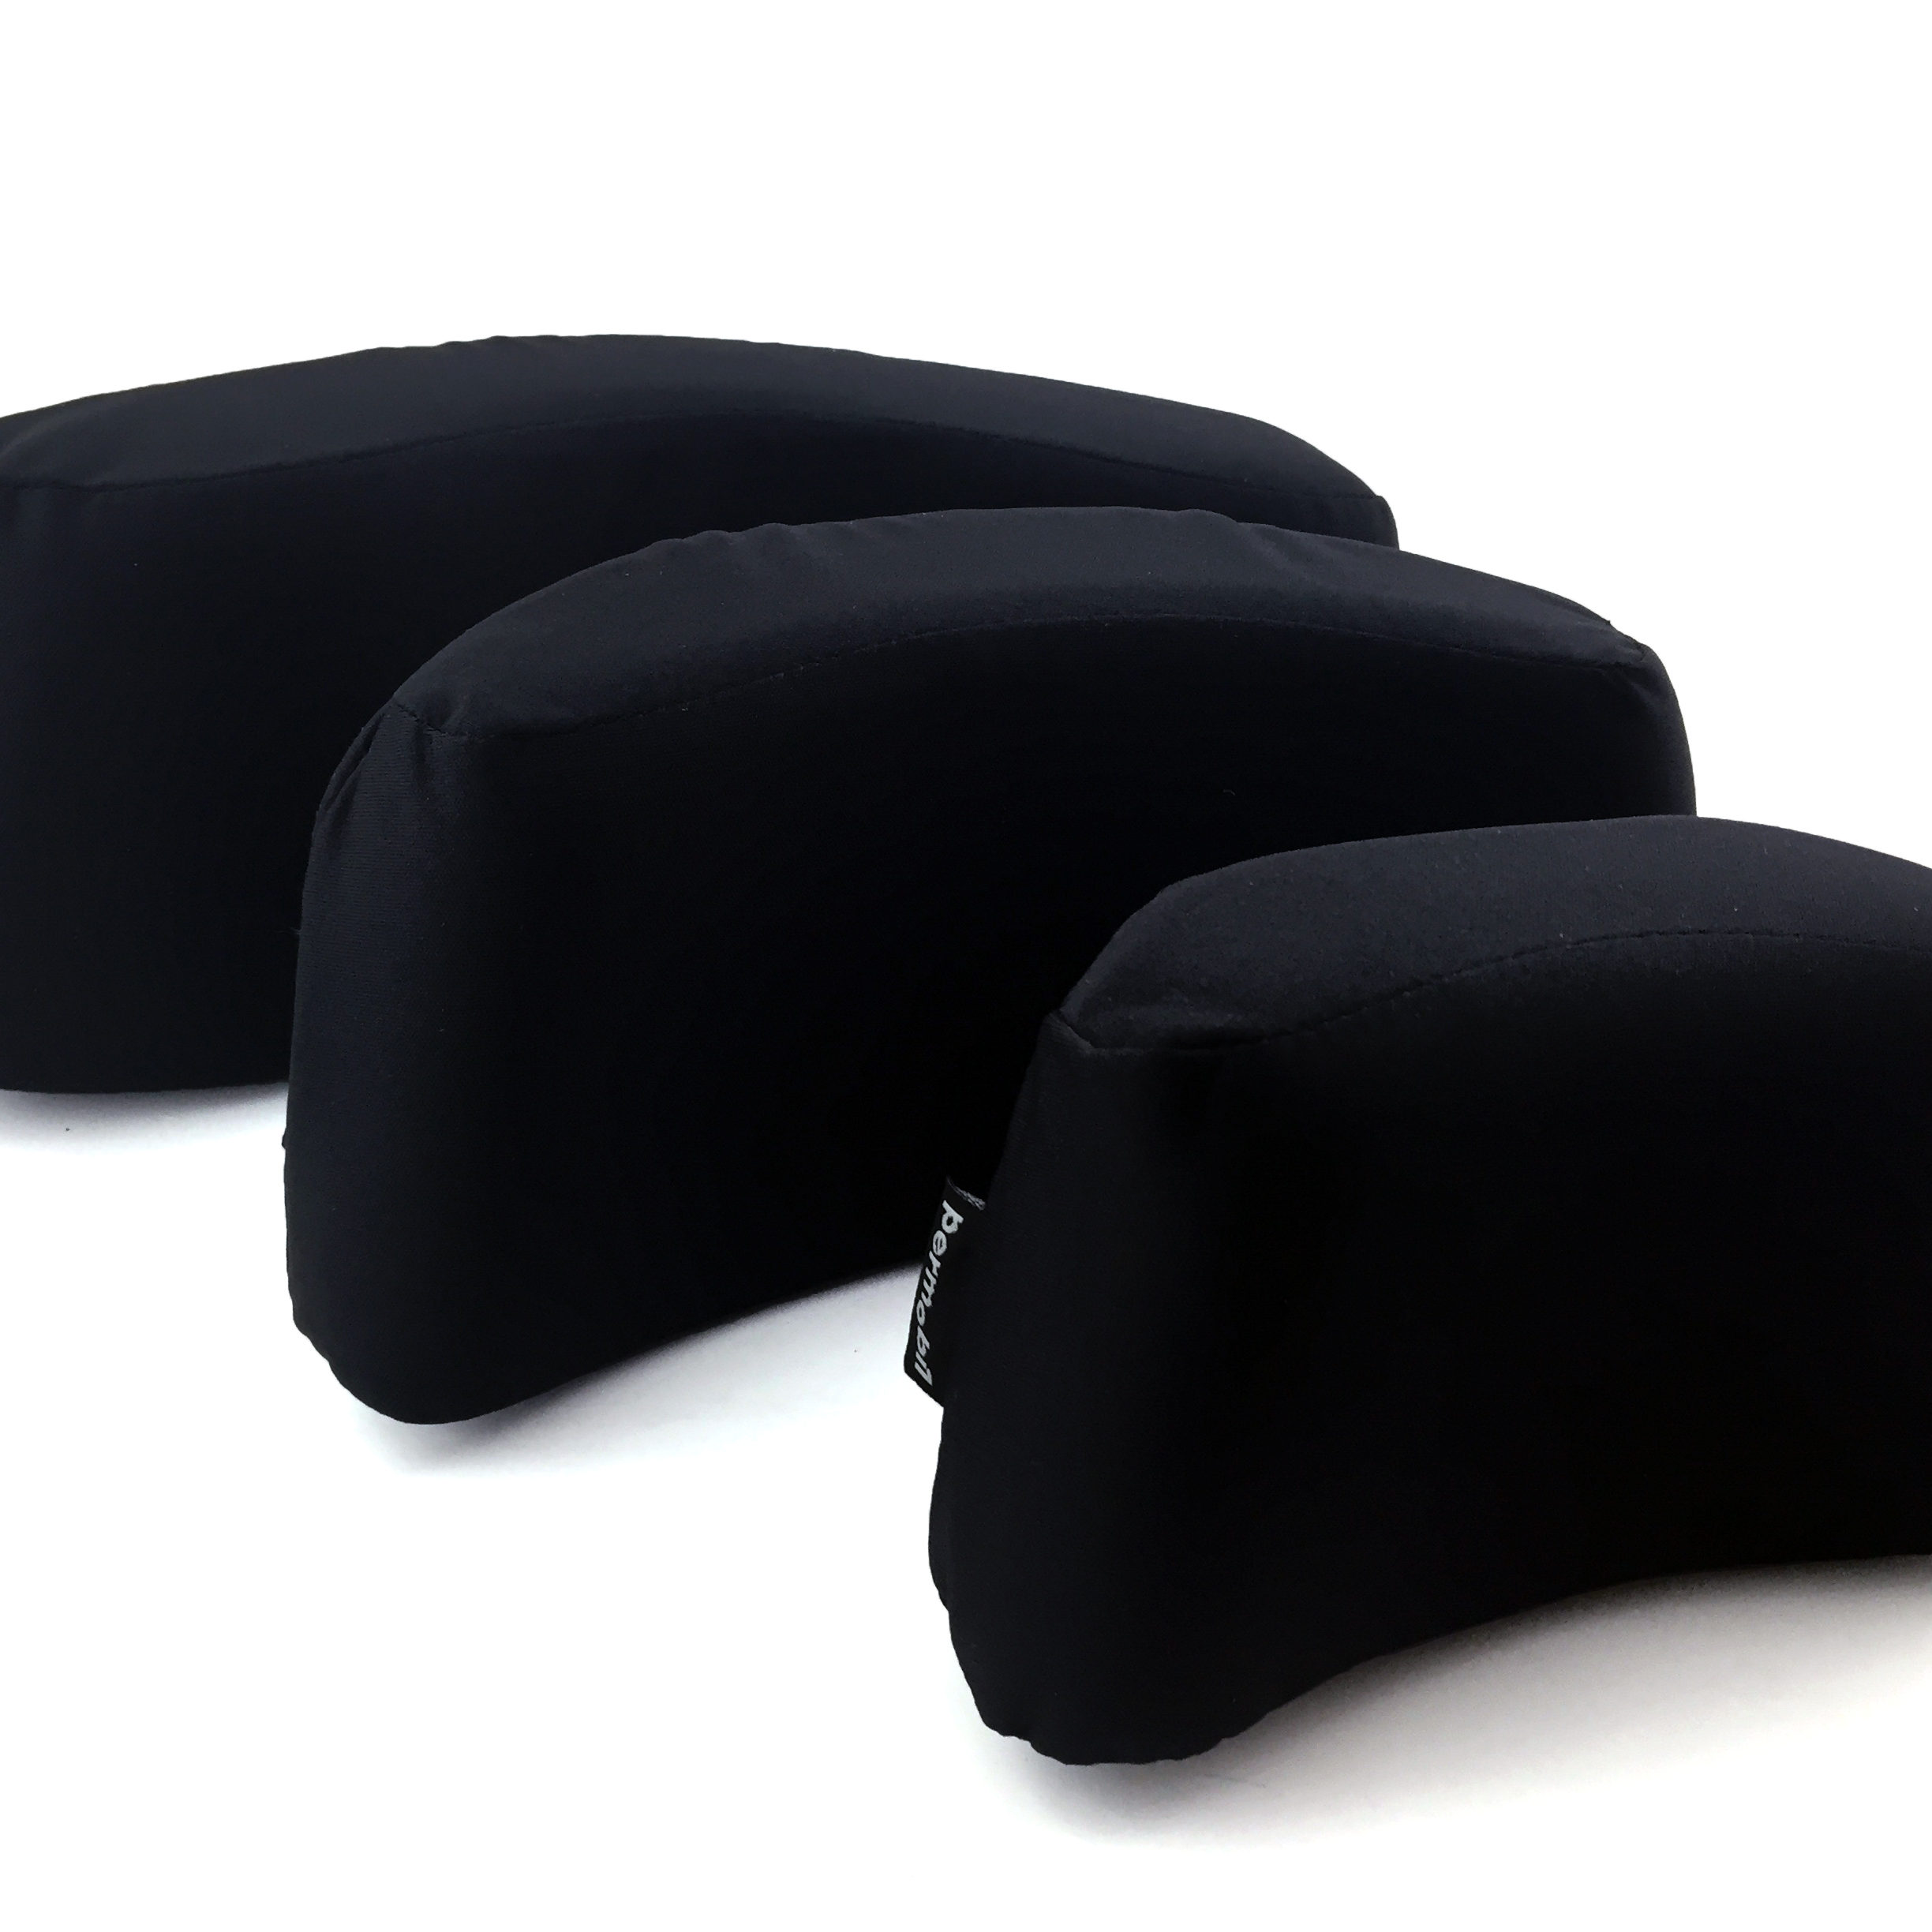 Headrest - Pad Sizes